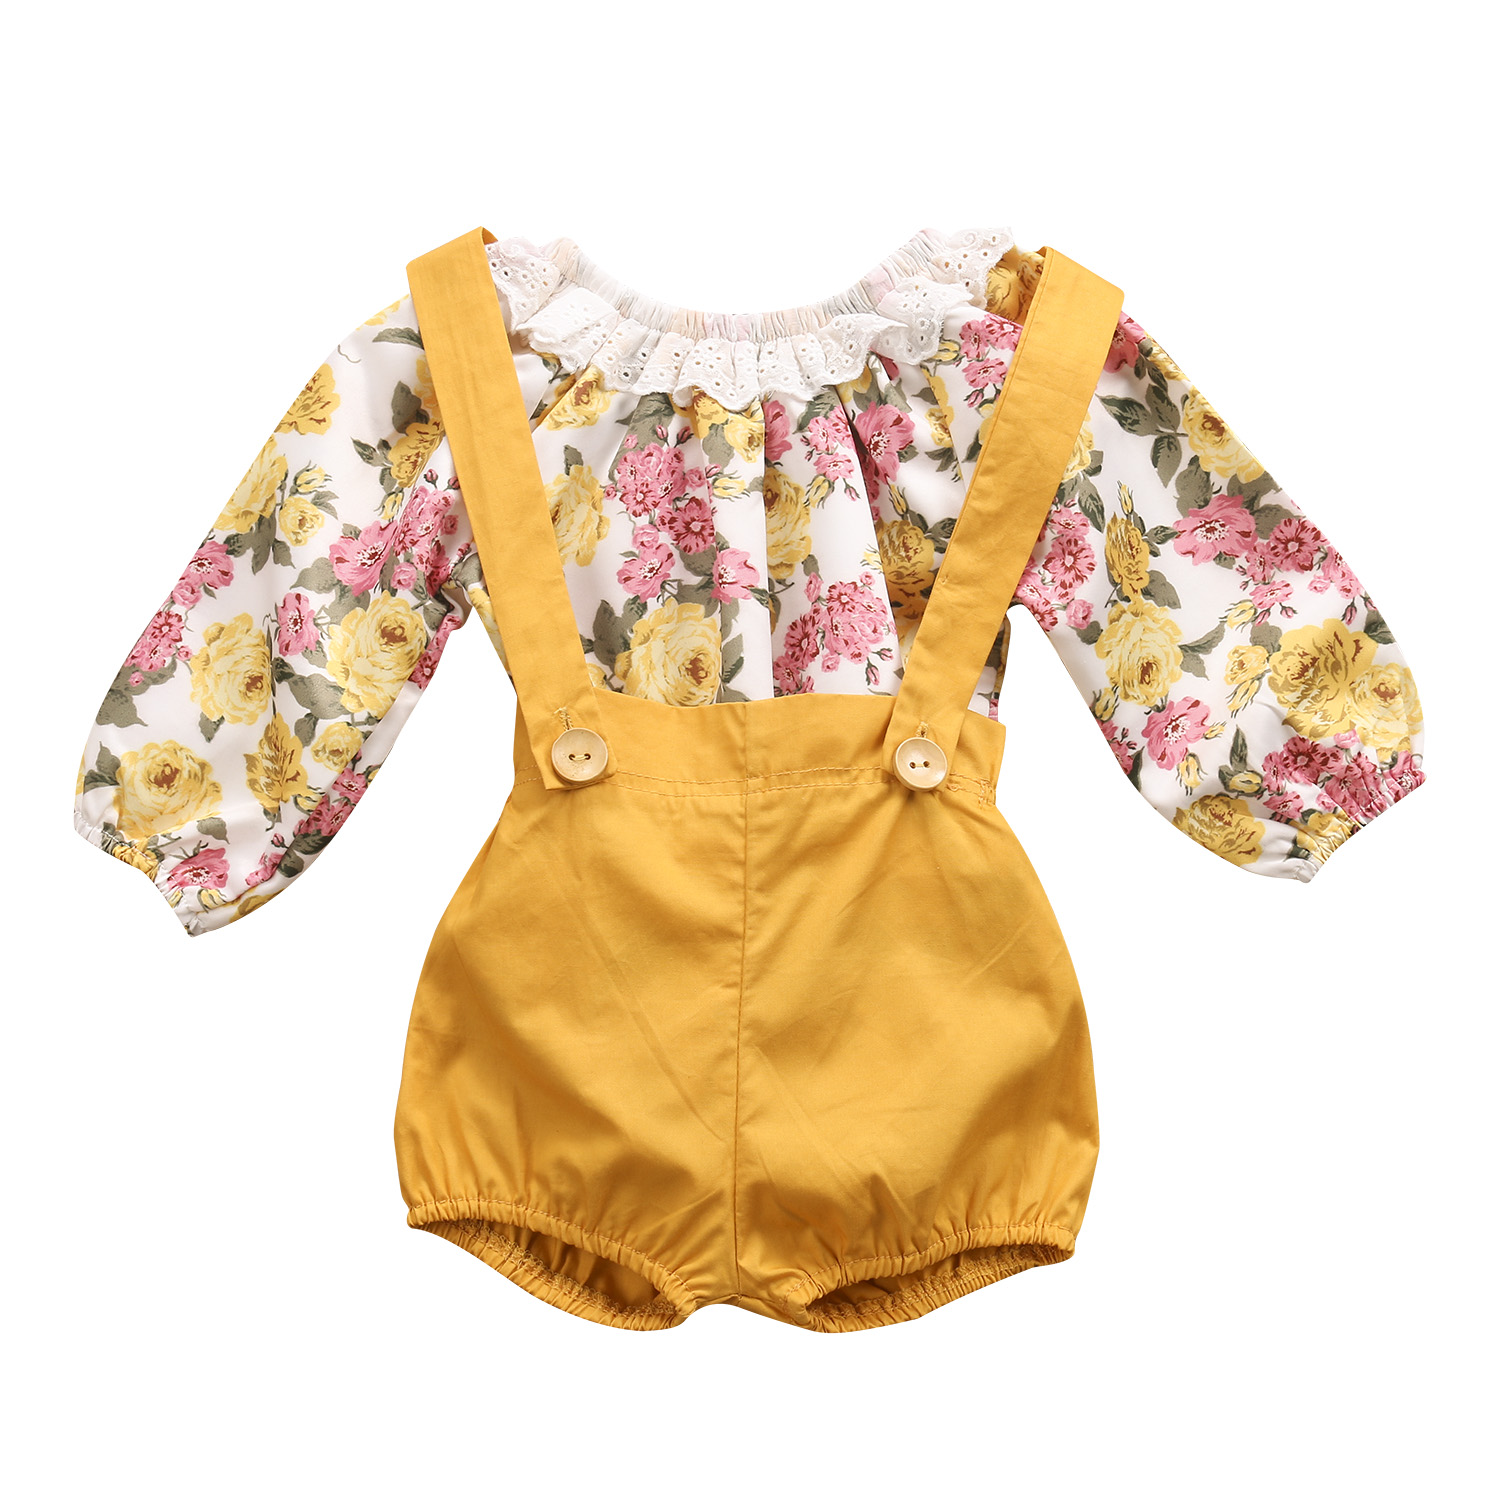 Baby Girl Floral Outfits Clothes Newborn Kids Girls Princess Lace